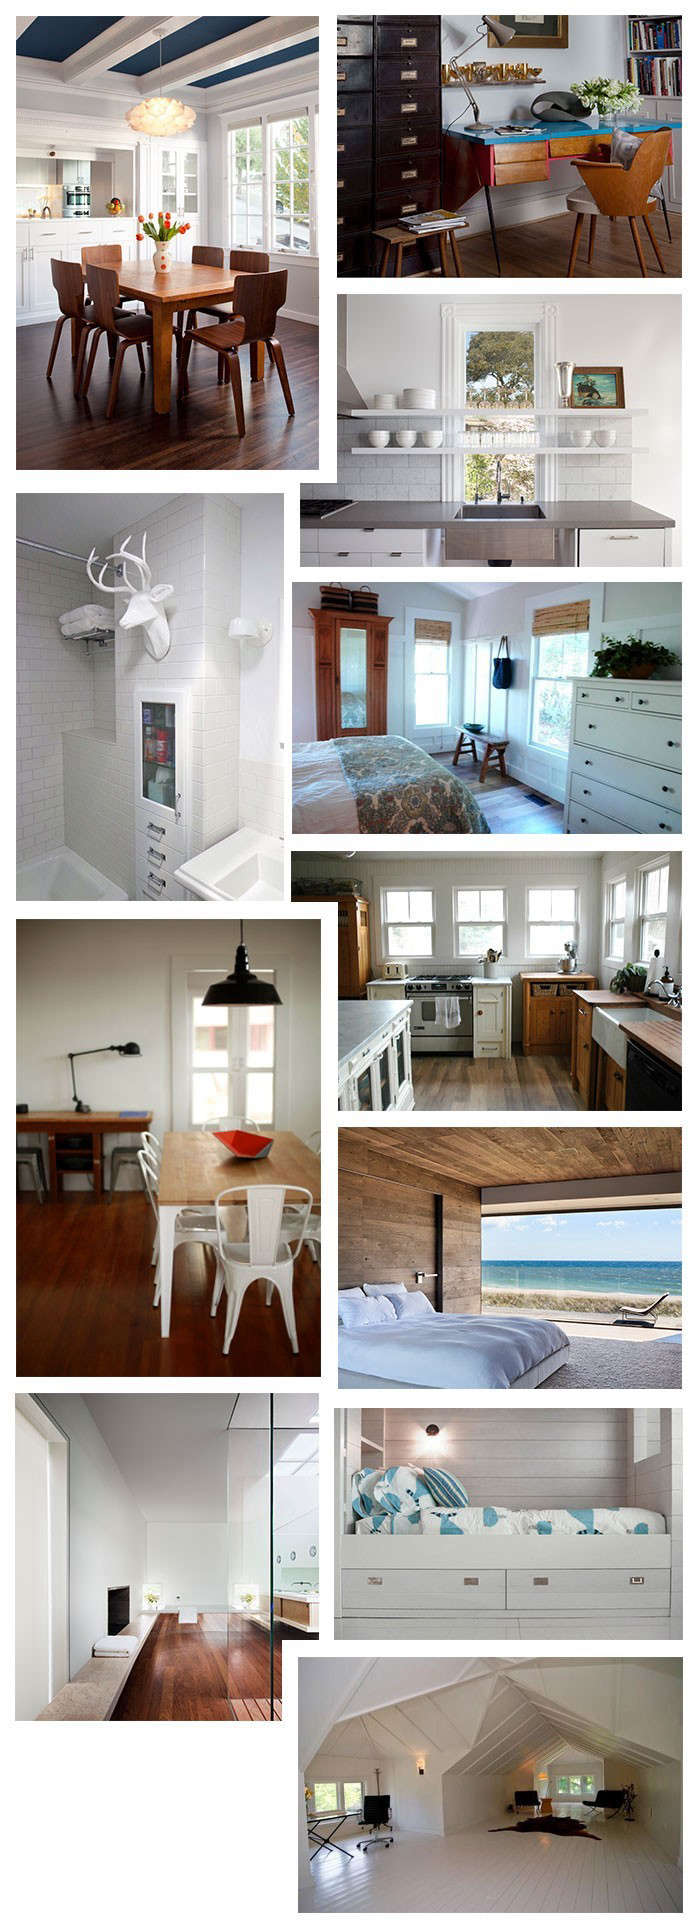 Remodelista Considered Design Awards Finalists Collage